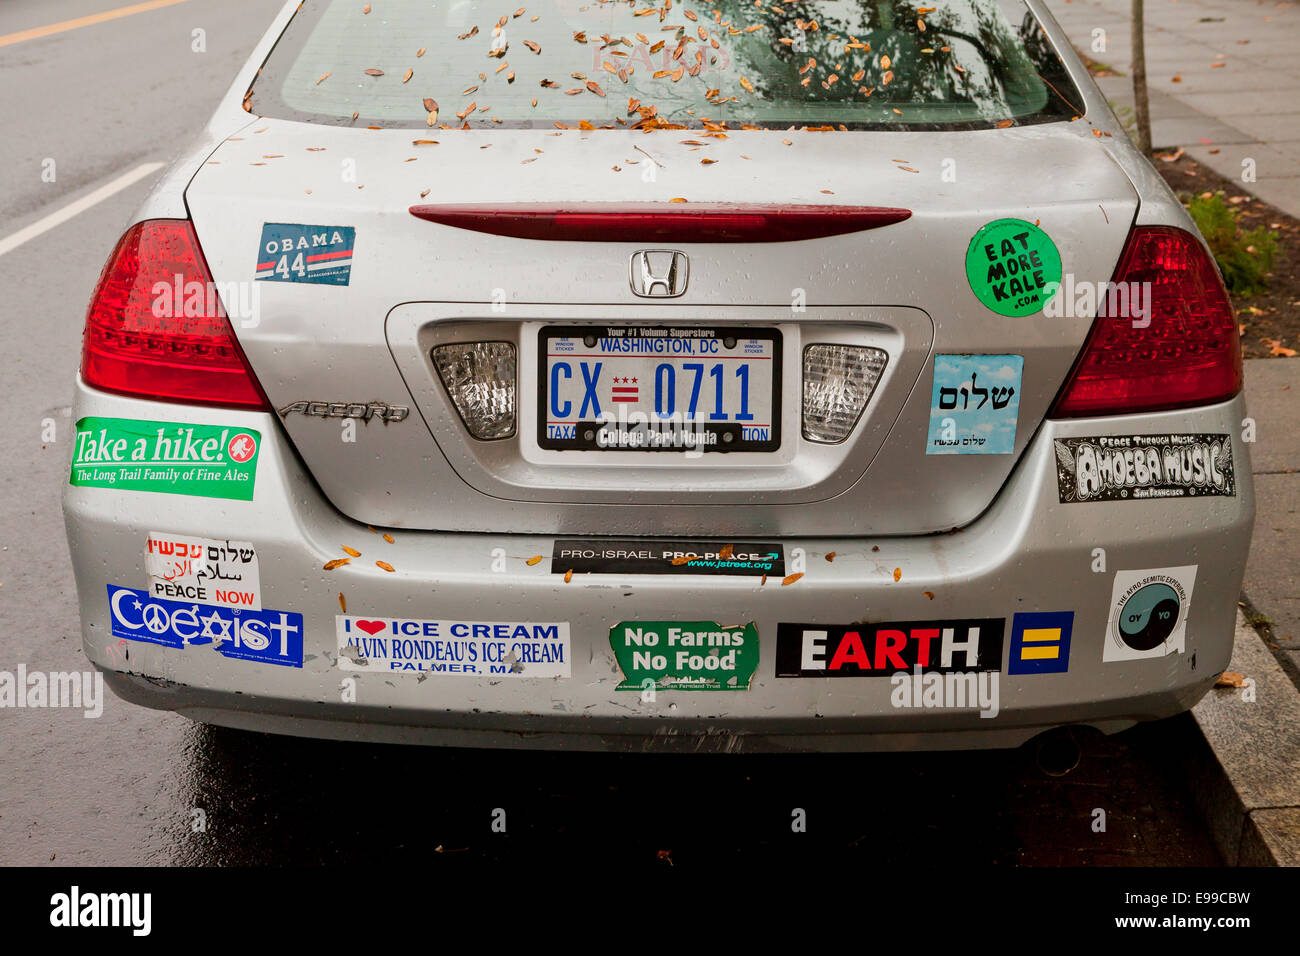 Car Bumper Stickers On Honda Accord USA Stock Photo Royalty - Stickers for honda accord